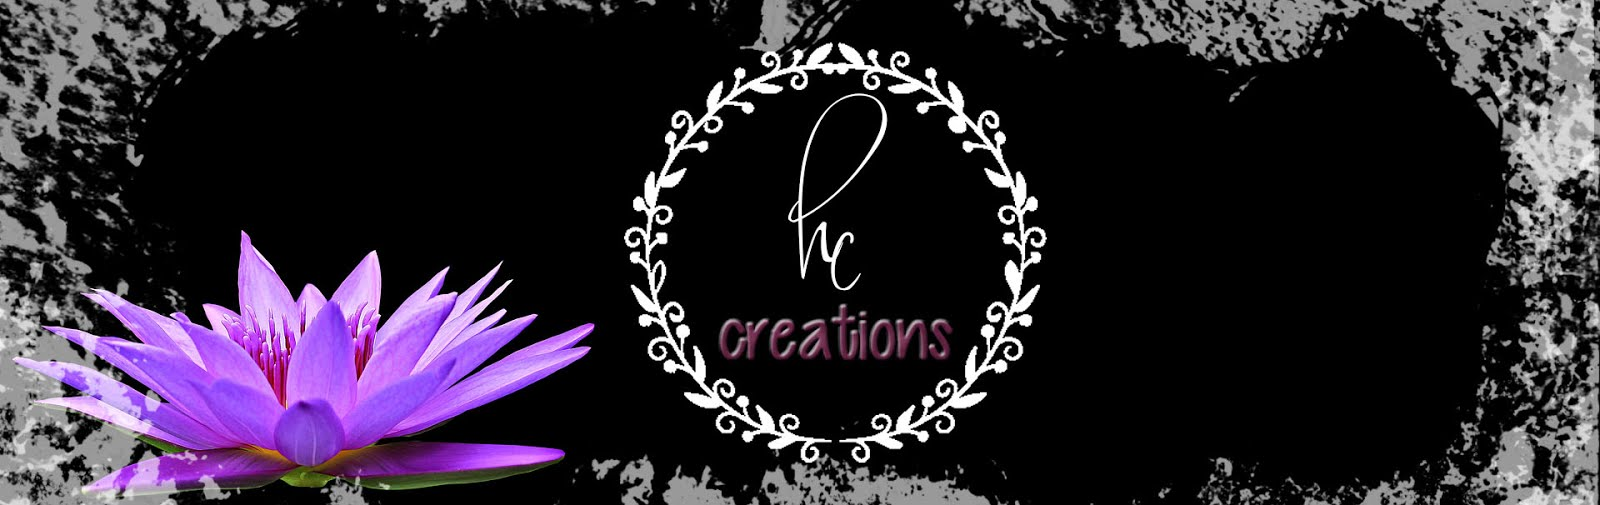 heatherccreations